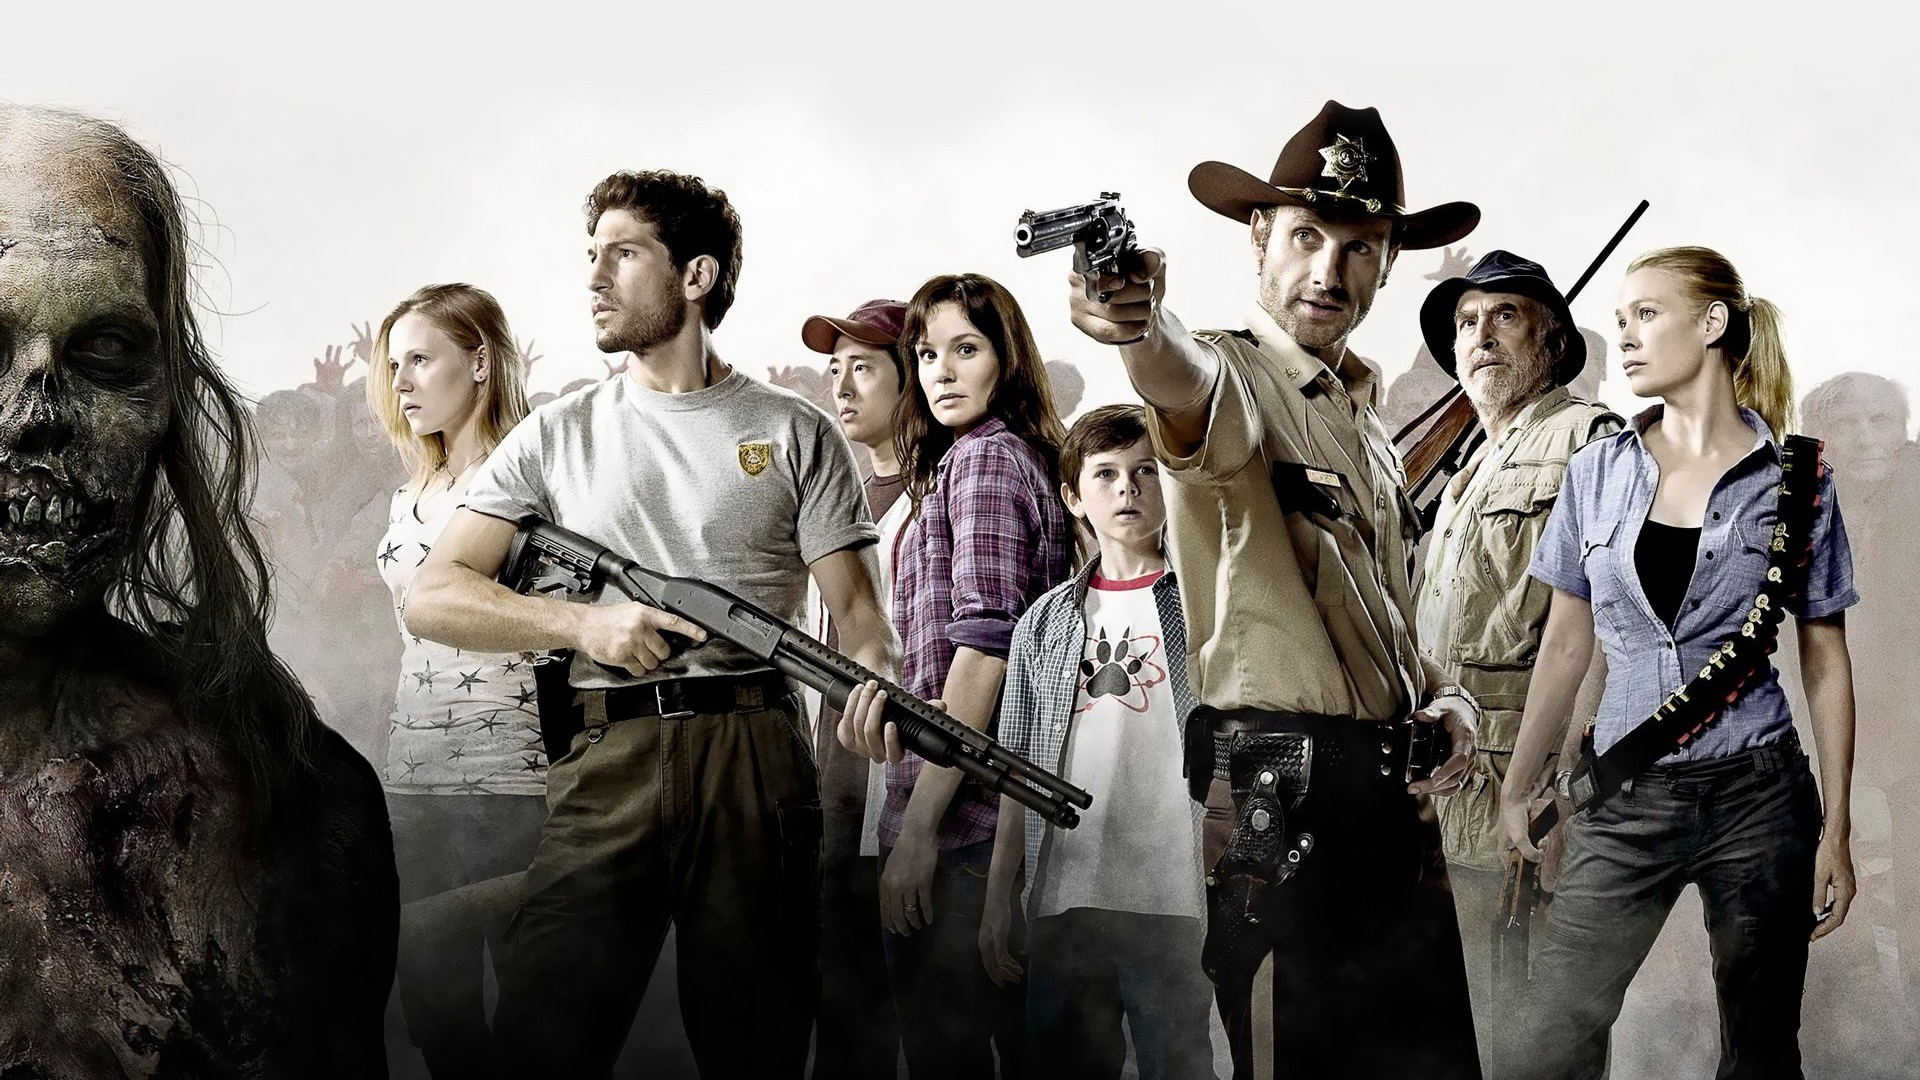 The Walking Dead Survival Guide for Digital Marketers [Infographic]